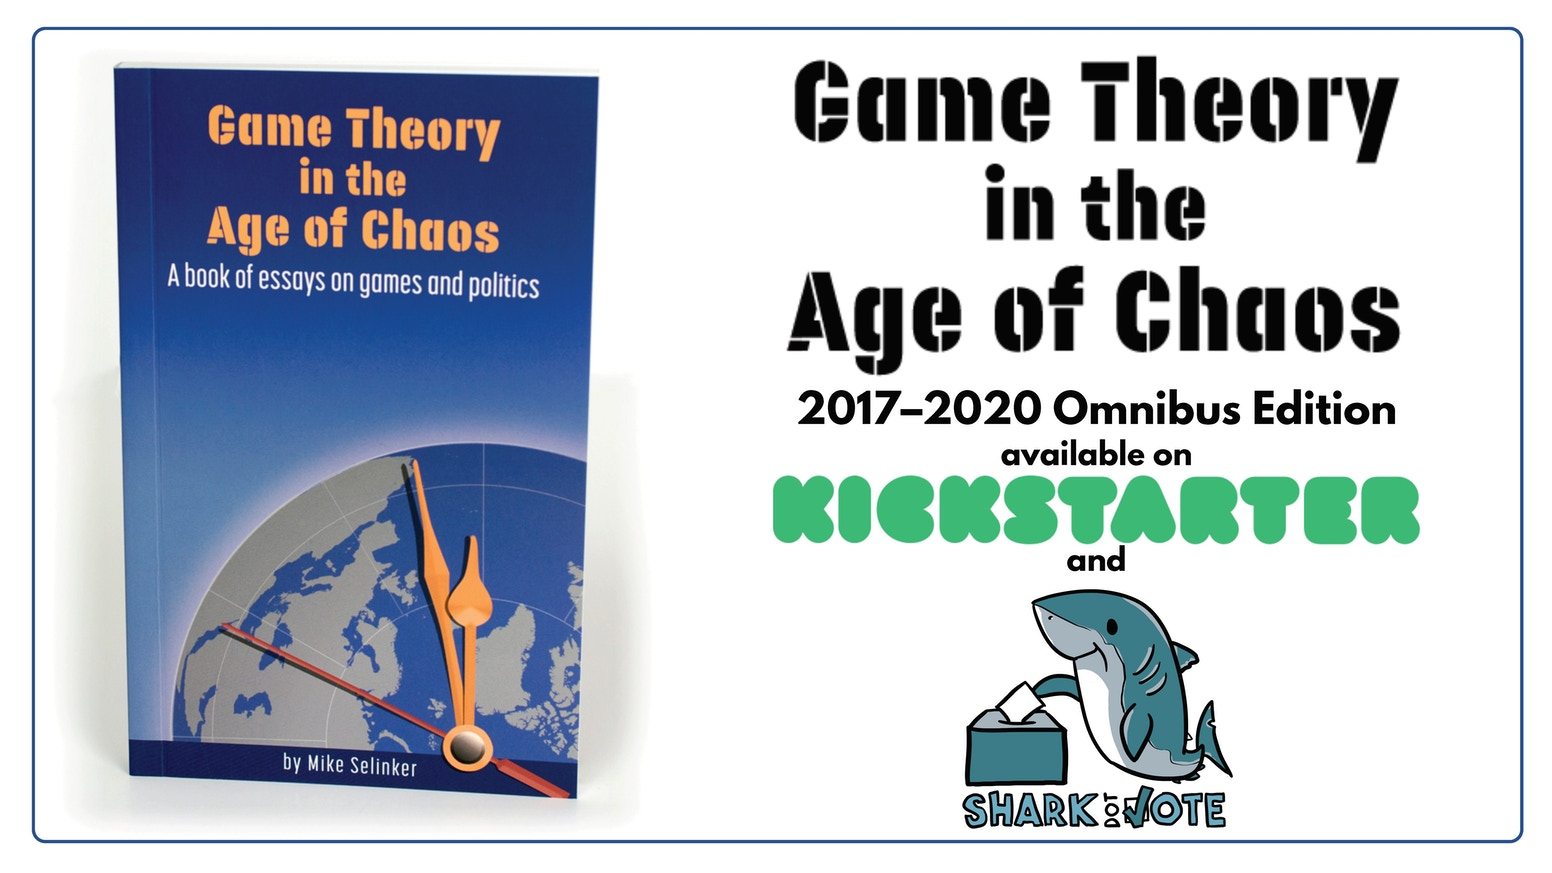 The massive omnibus edition of Mike Selinker's book Game Theory in the Age of Chaos, sent to you and Congress.